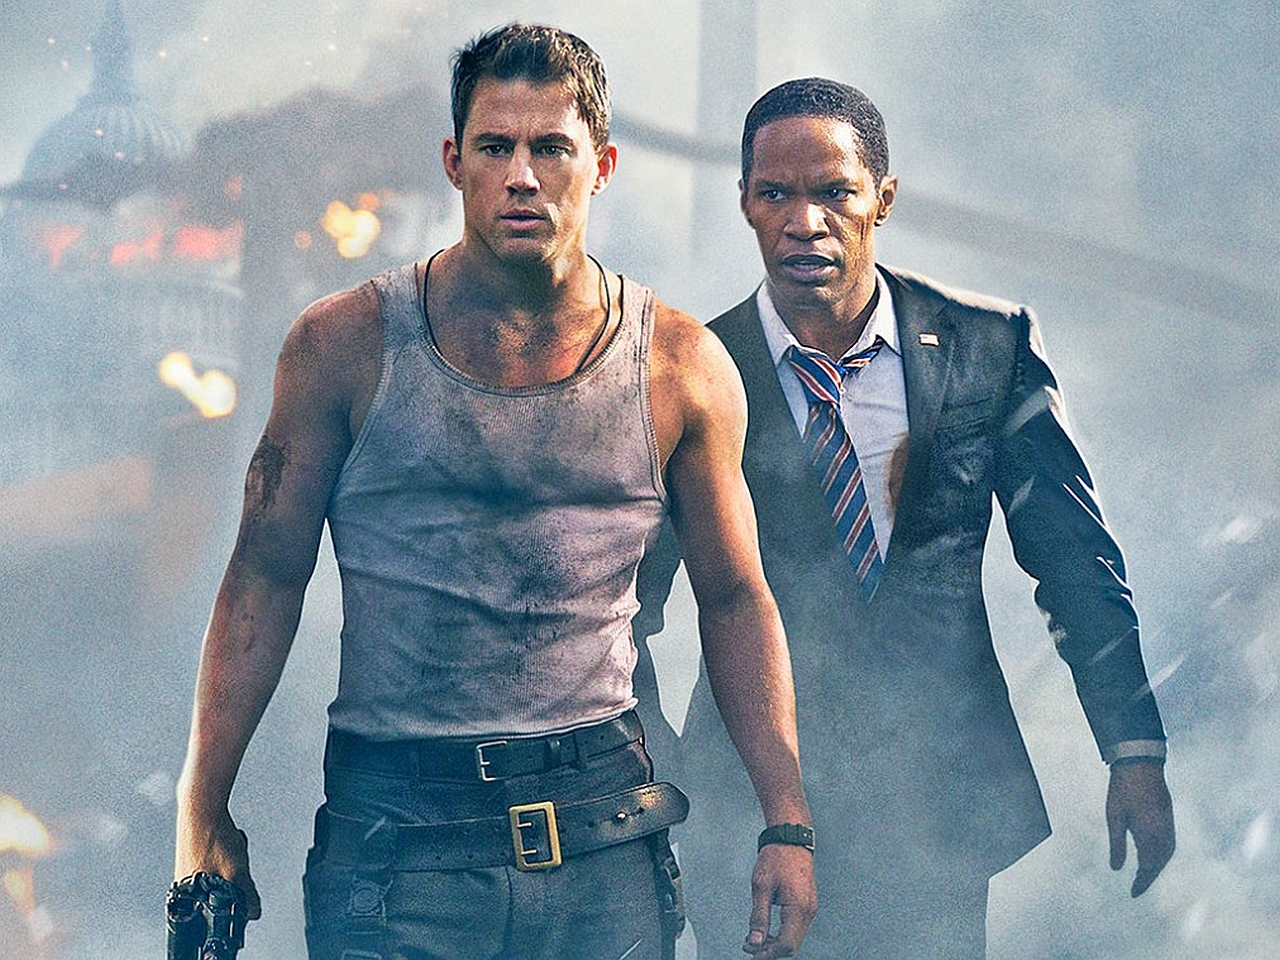 Channing Tatum White House Down Full Movie